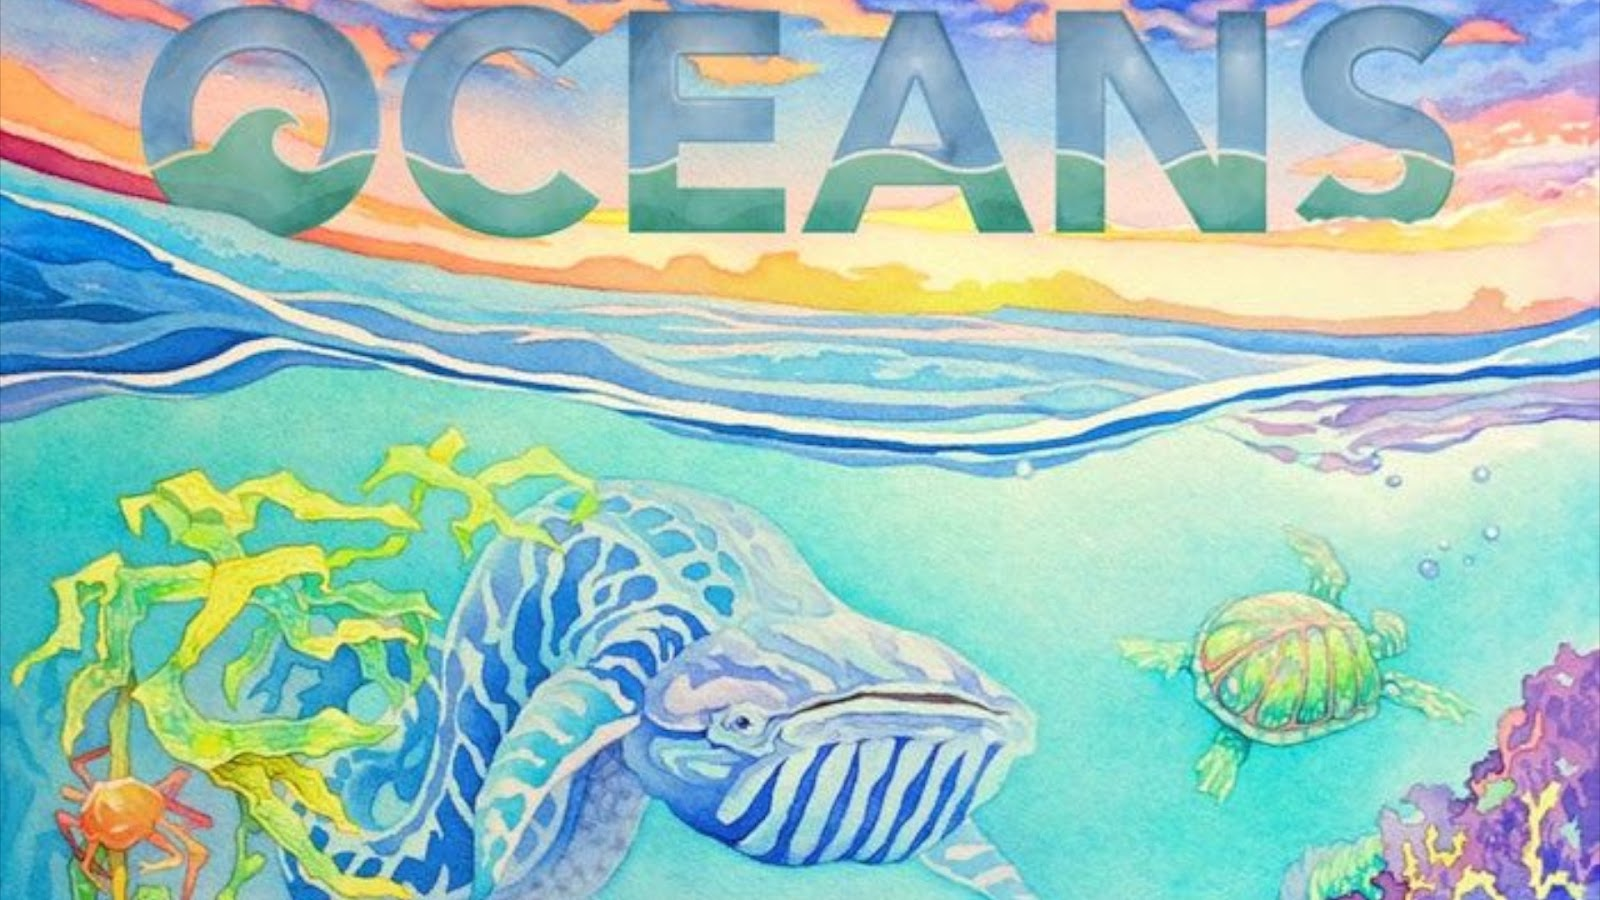 Kickstarter Highlights - Oceans